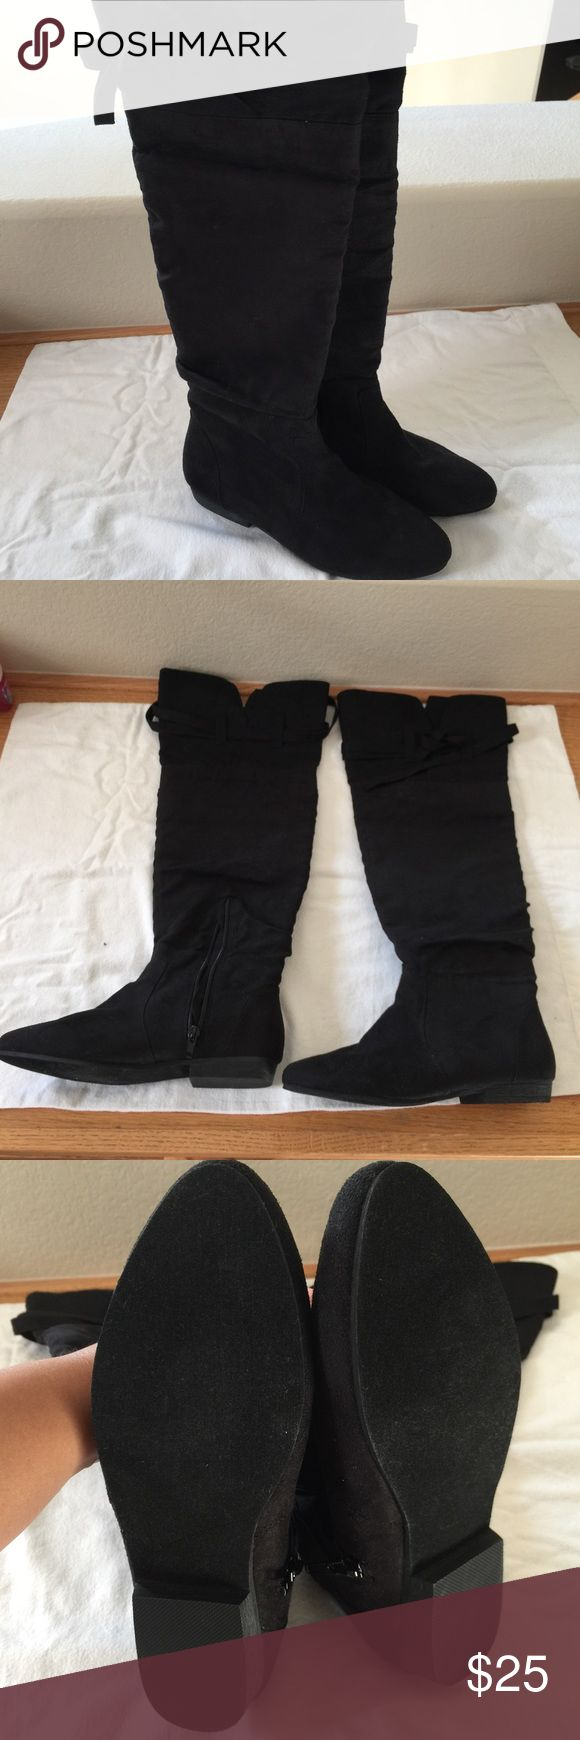 🍀Brand New Black Knee High Boots Size 7🍀 Brand New Sexy Black Knee High Boots Size 7🚫NO TRADES🚫NOT NEGOTIABLE🚫 JustFab Shoes Winter & Rain Boots